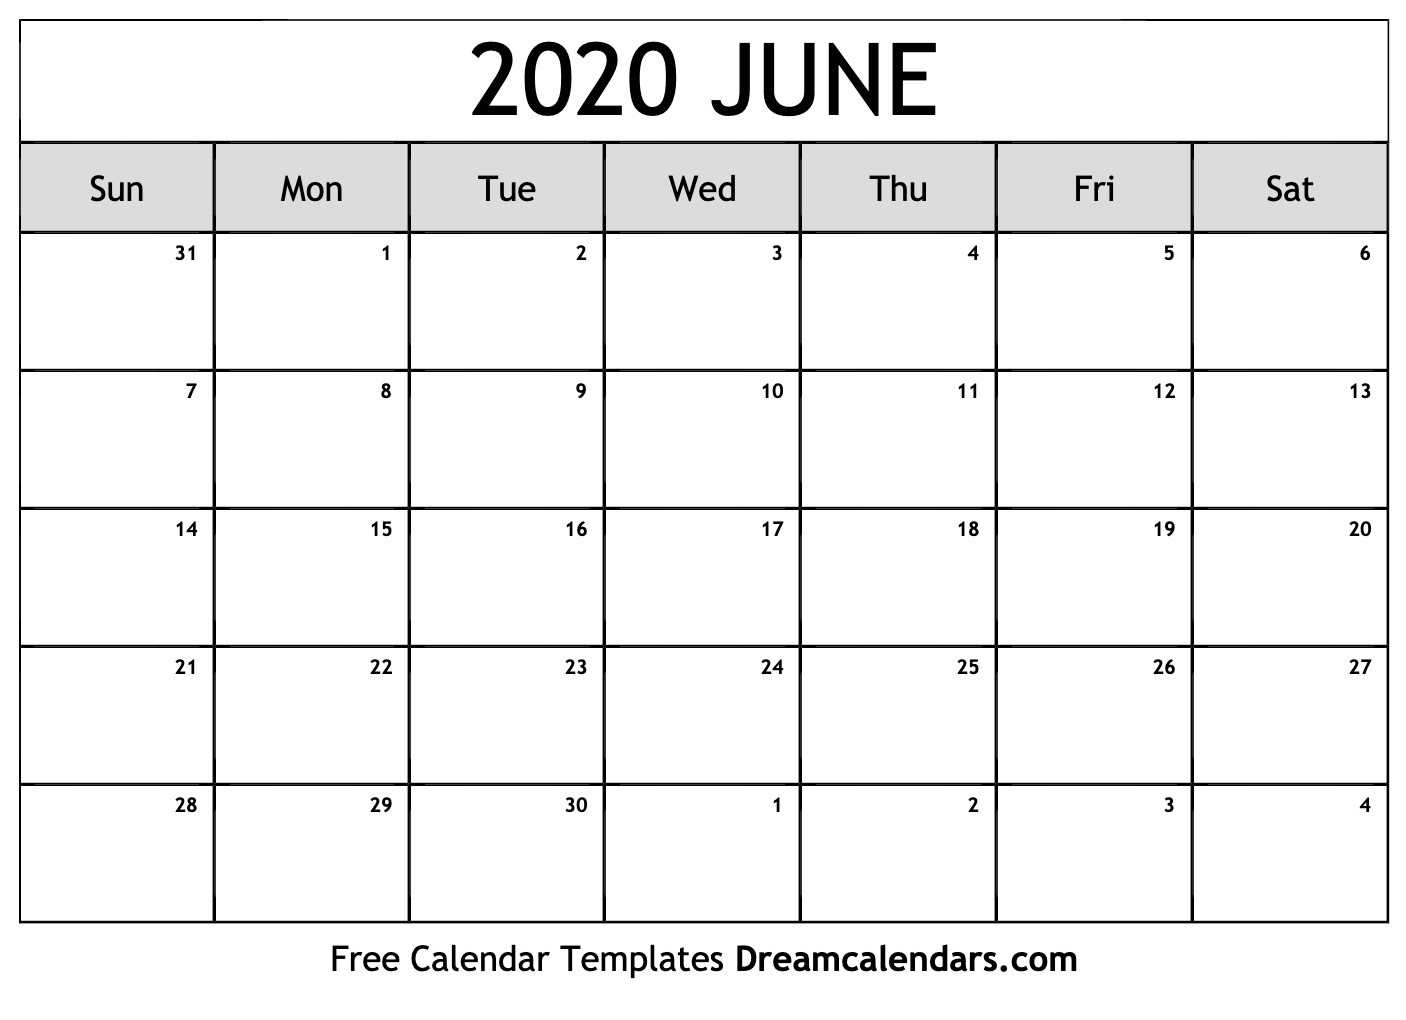 June Monthly Calendar 2020 - Wpa.wpart.co-Blank Calendar 2020 June July August